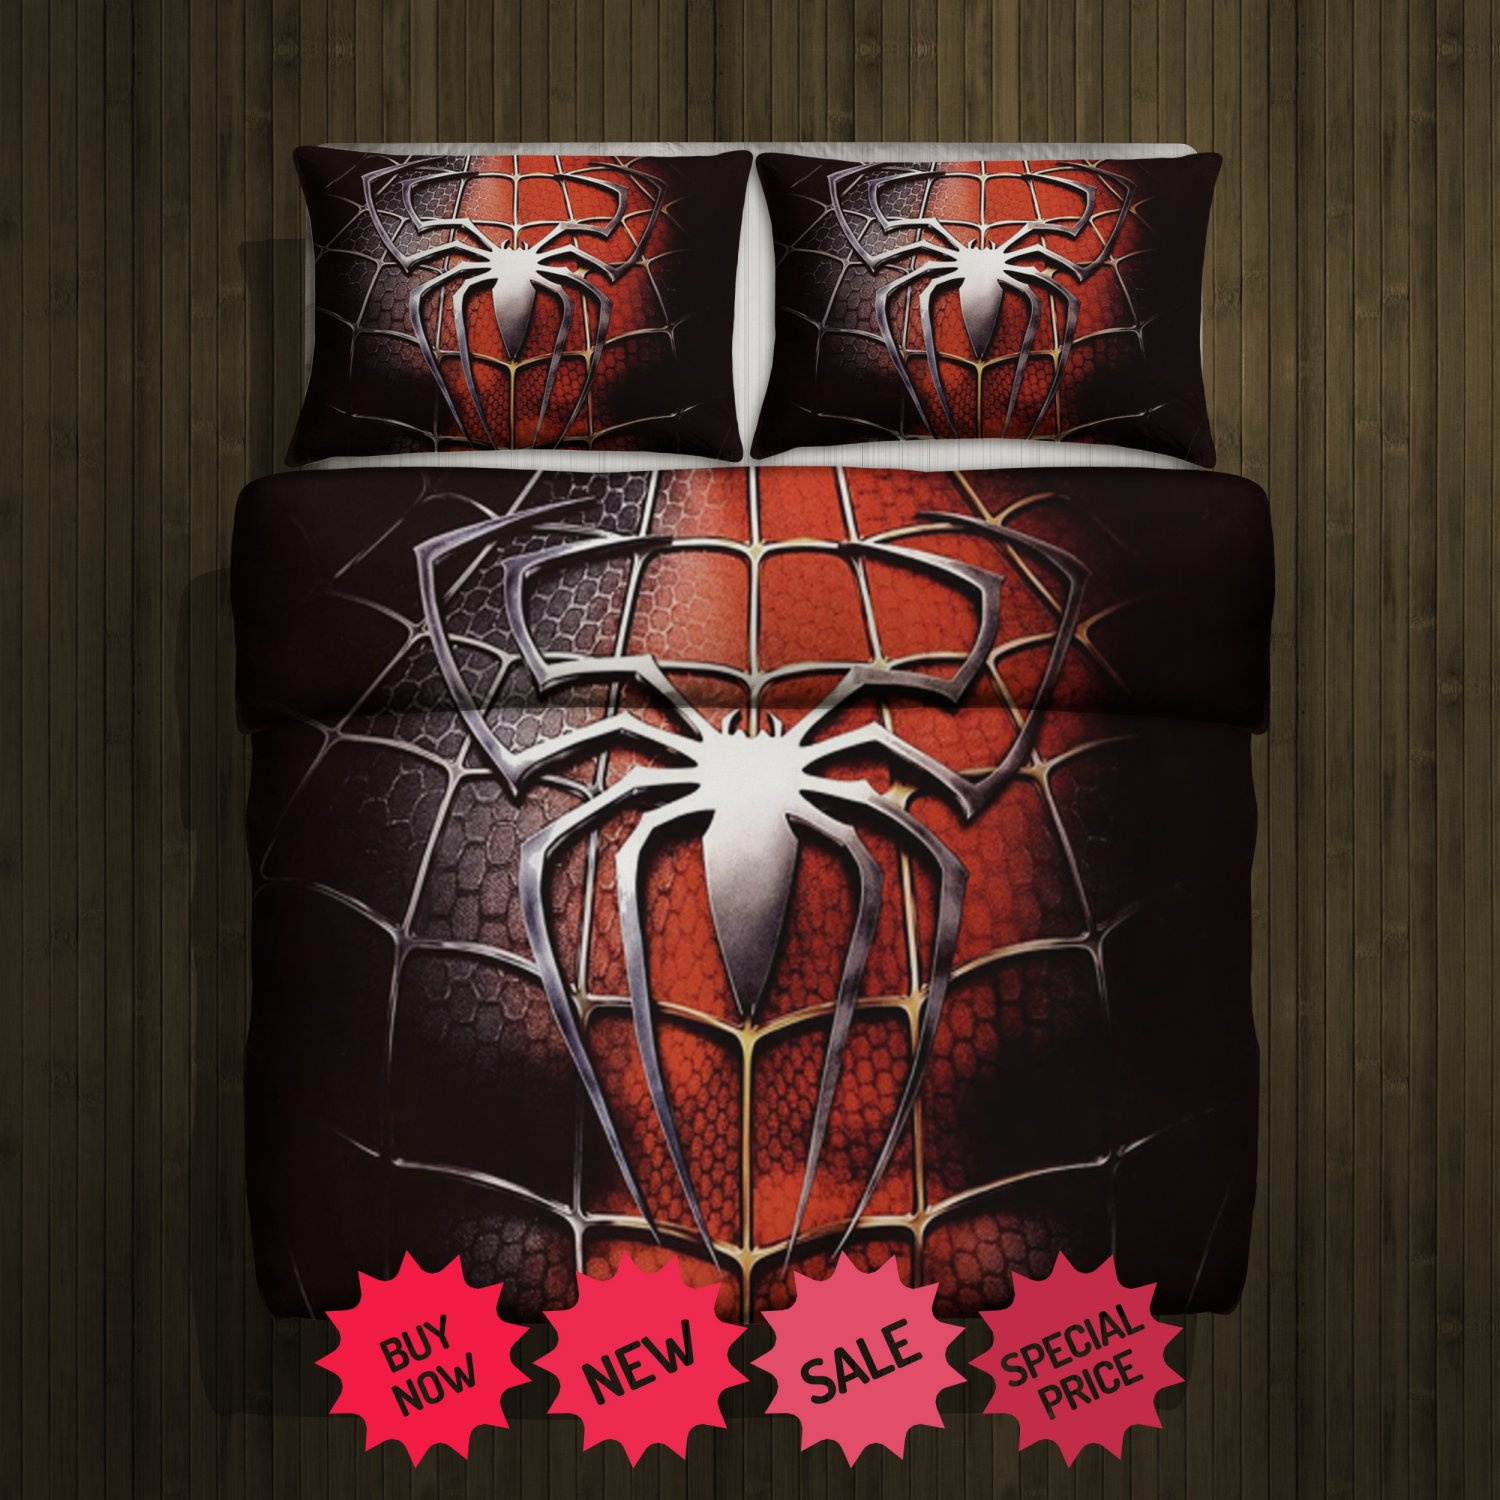 Spiderman New Blanket Large & 2 Pillow Cases #92733436,92733437(2)